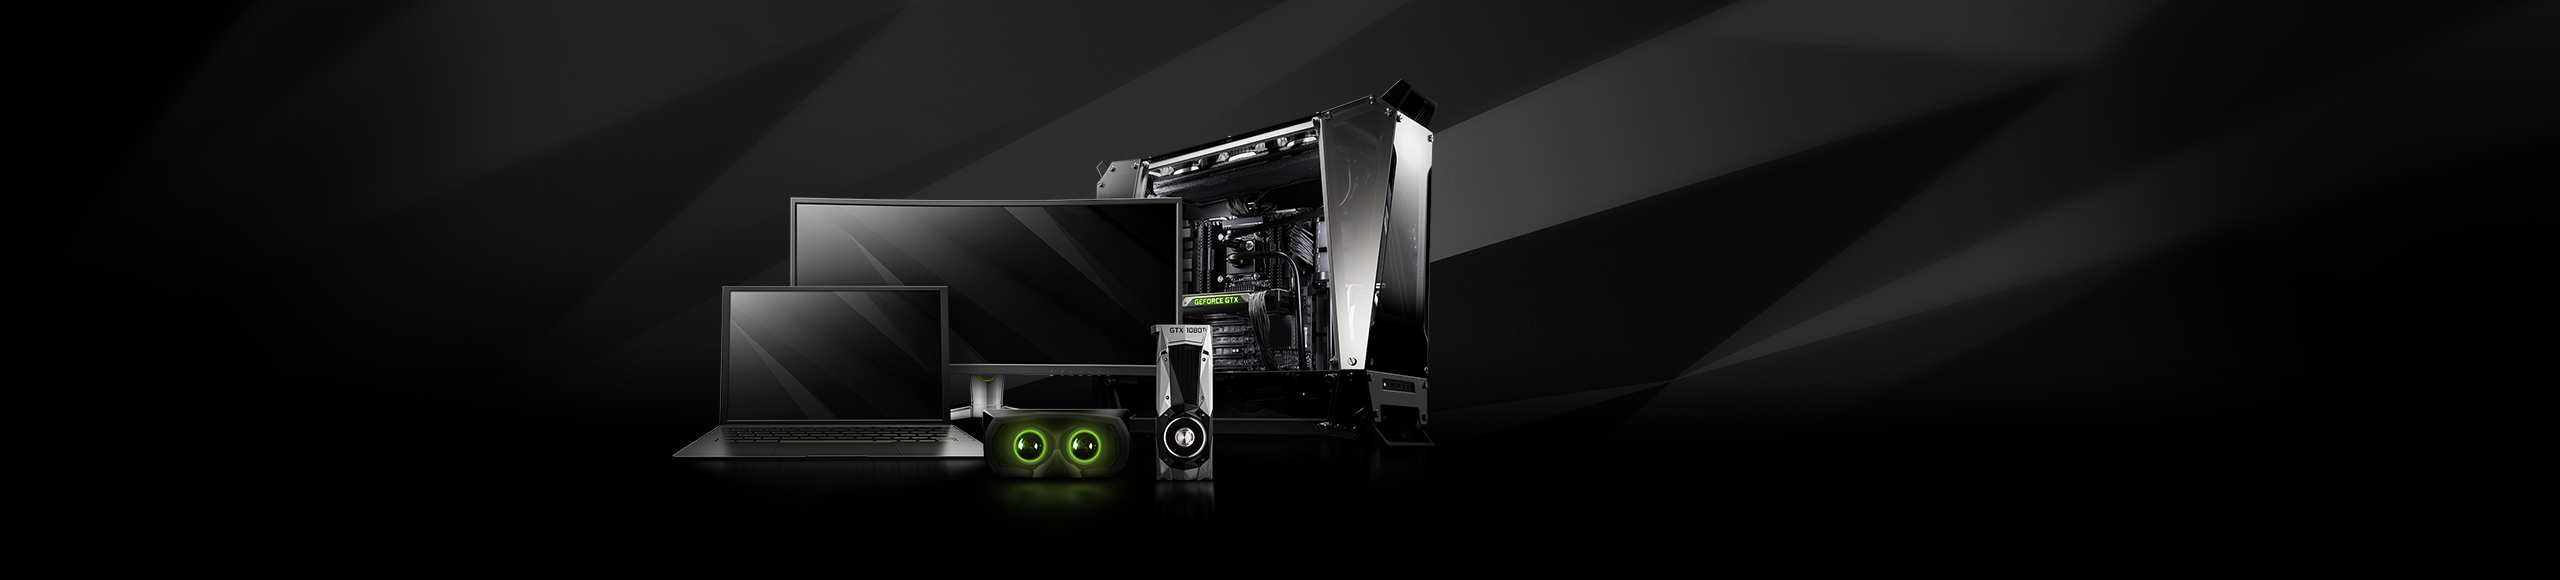 nvidia-about-geforce-bkgd-2560-ud